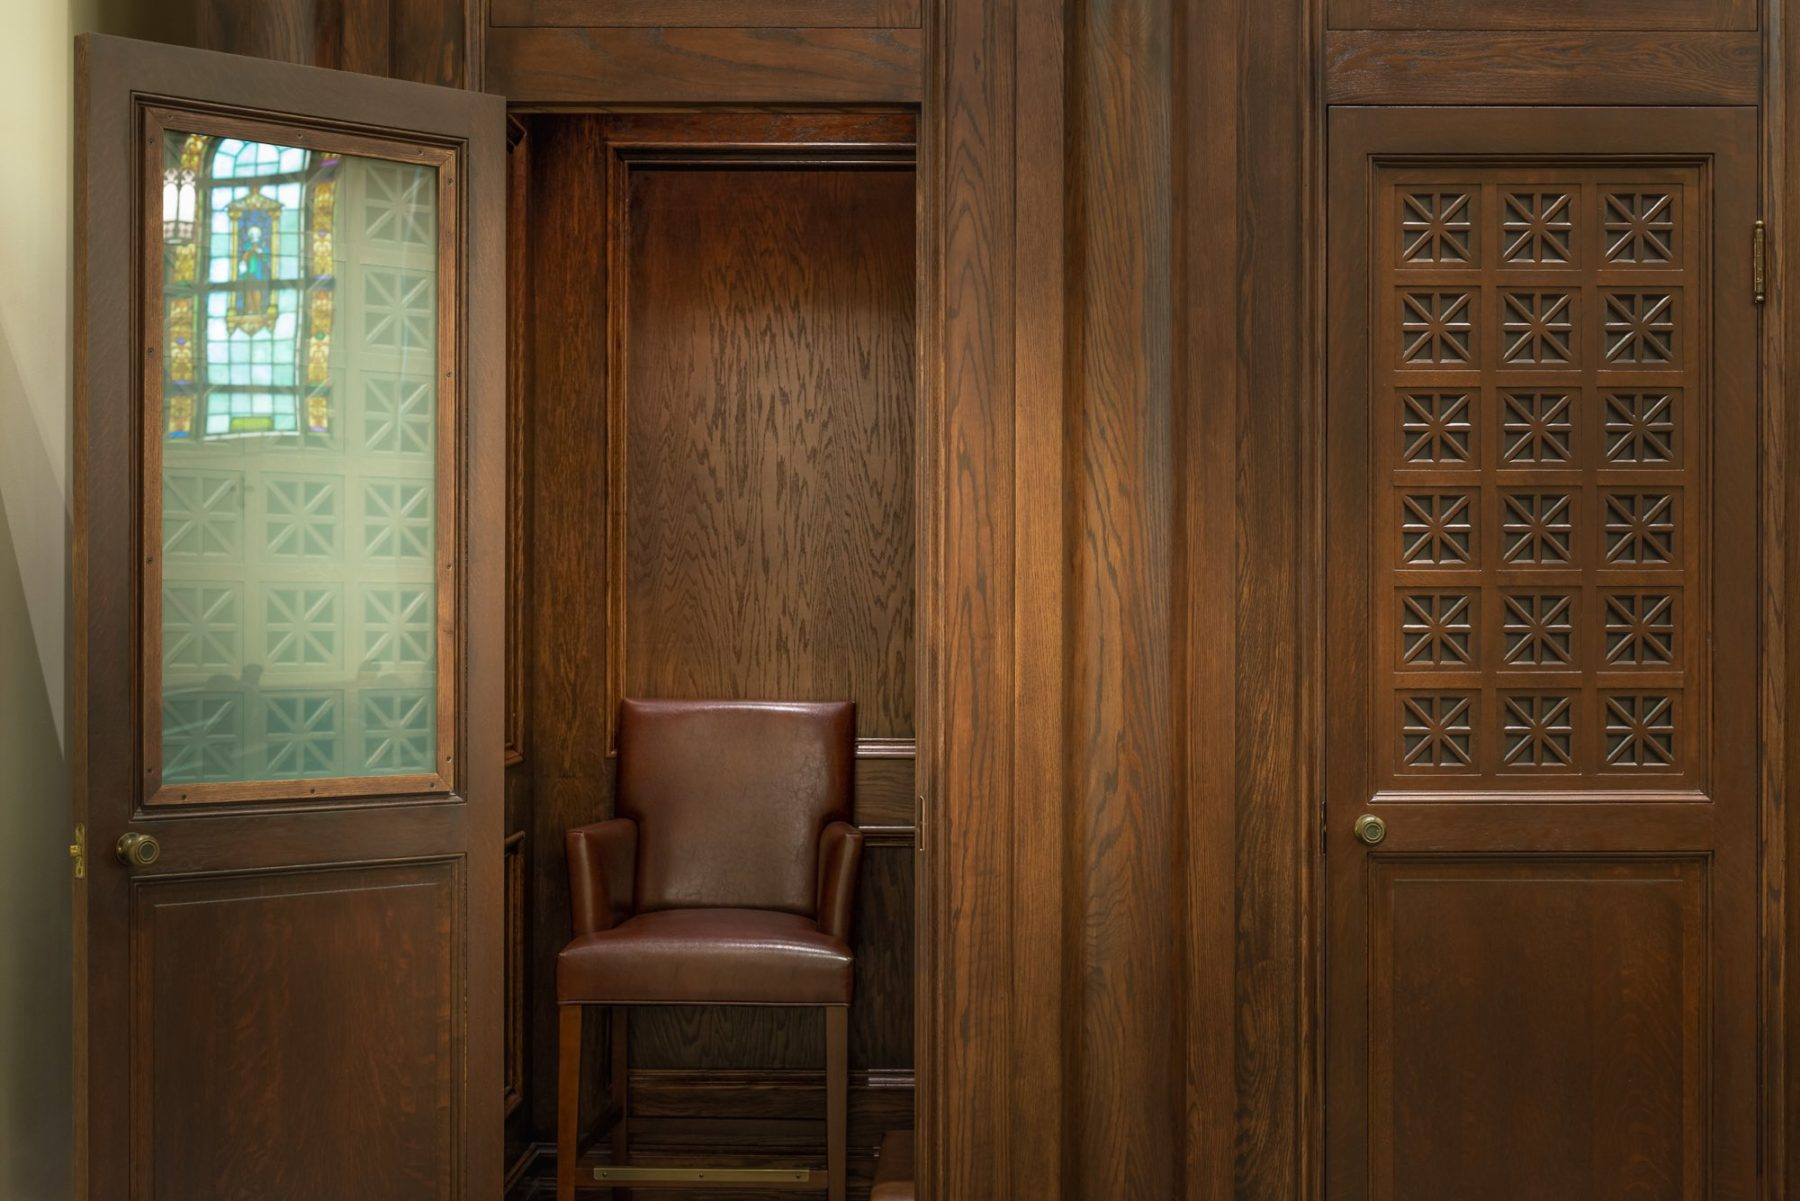 Confessional doors ornate wood pattern with soundproof glass and natural light architecture by Harrison Design